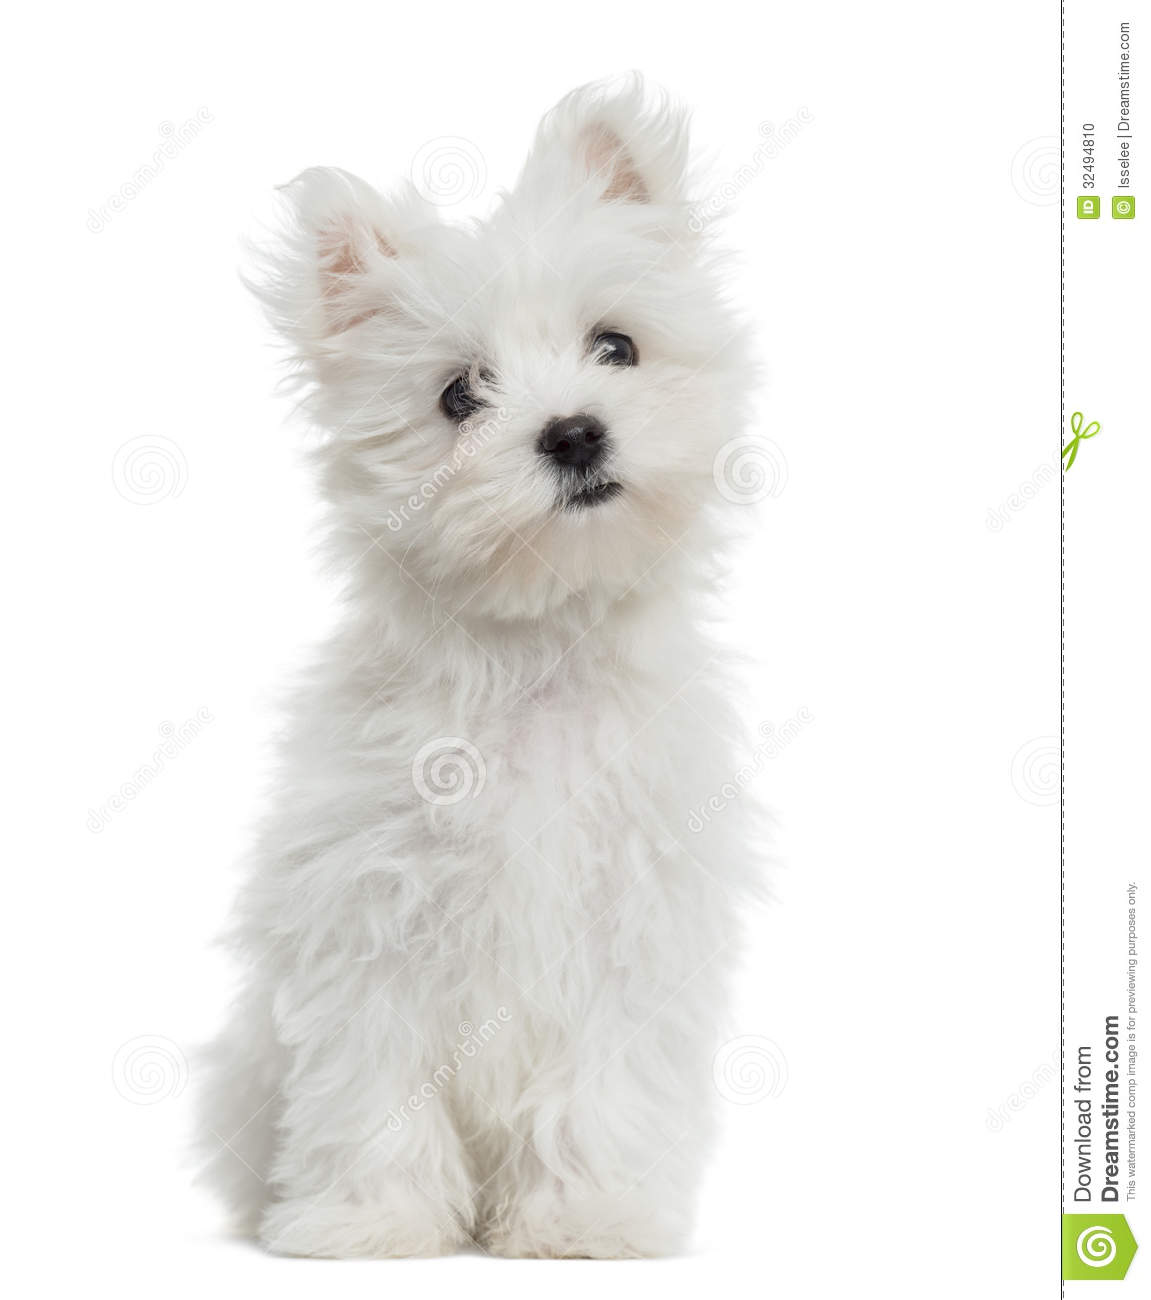 Maltese Puppy Sitting, Looking At The Camera, 2 Months Old Stock Photo ...